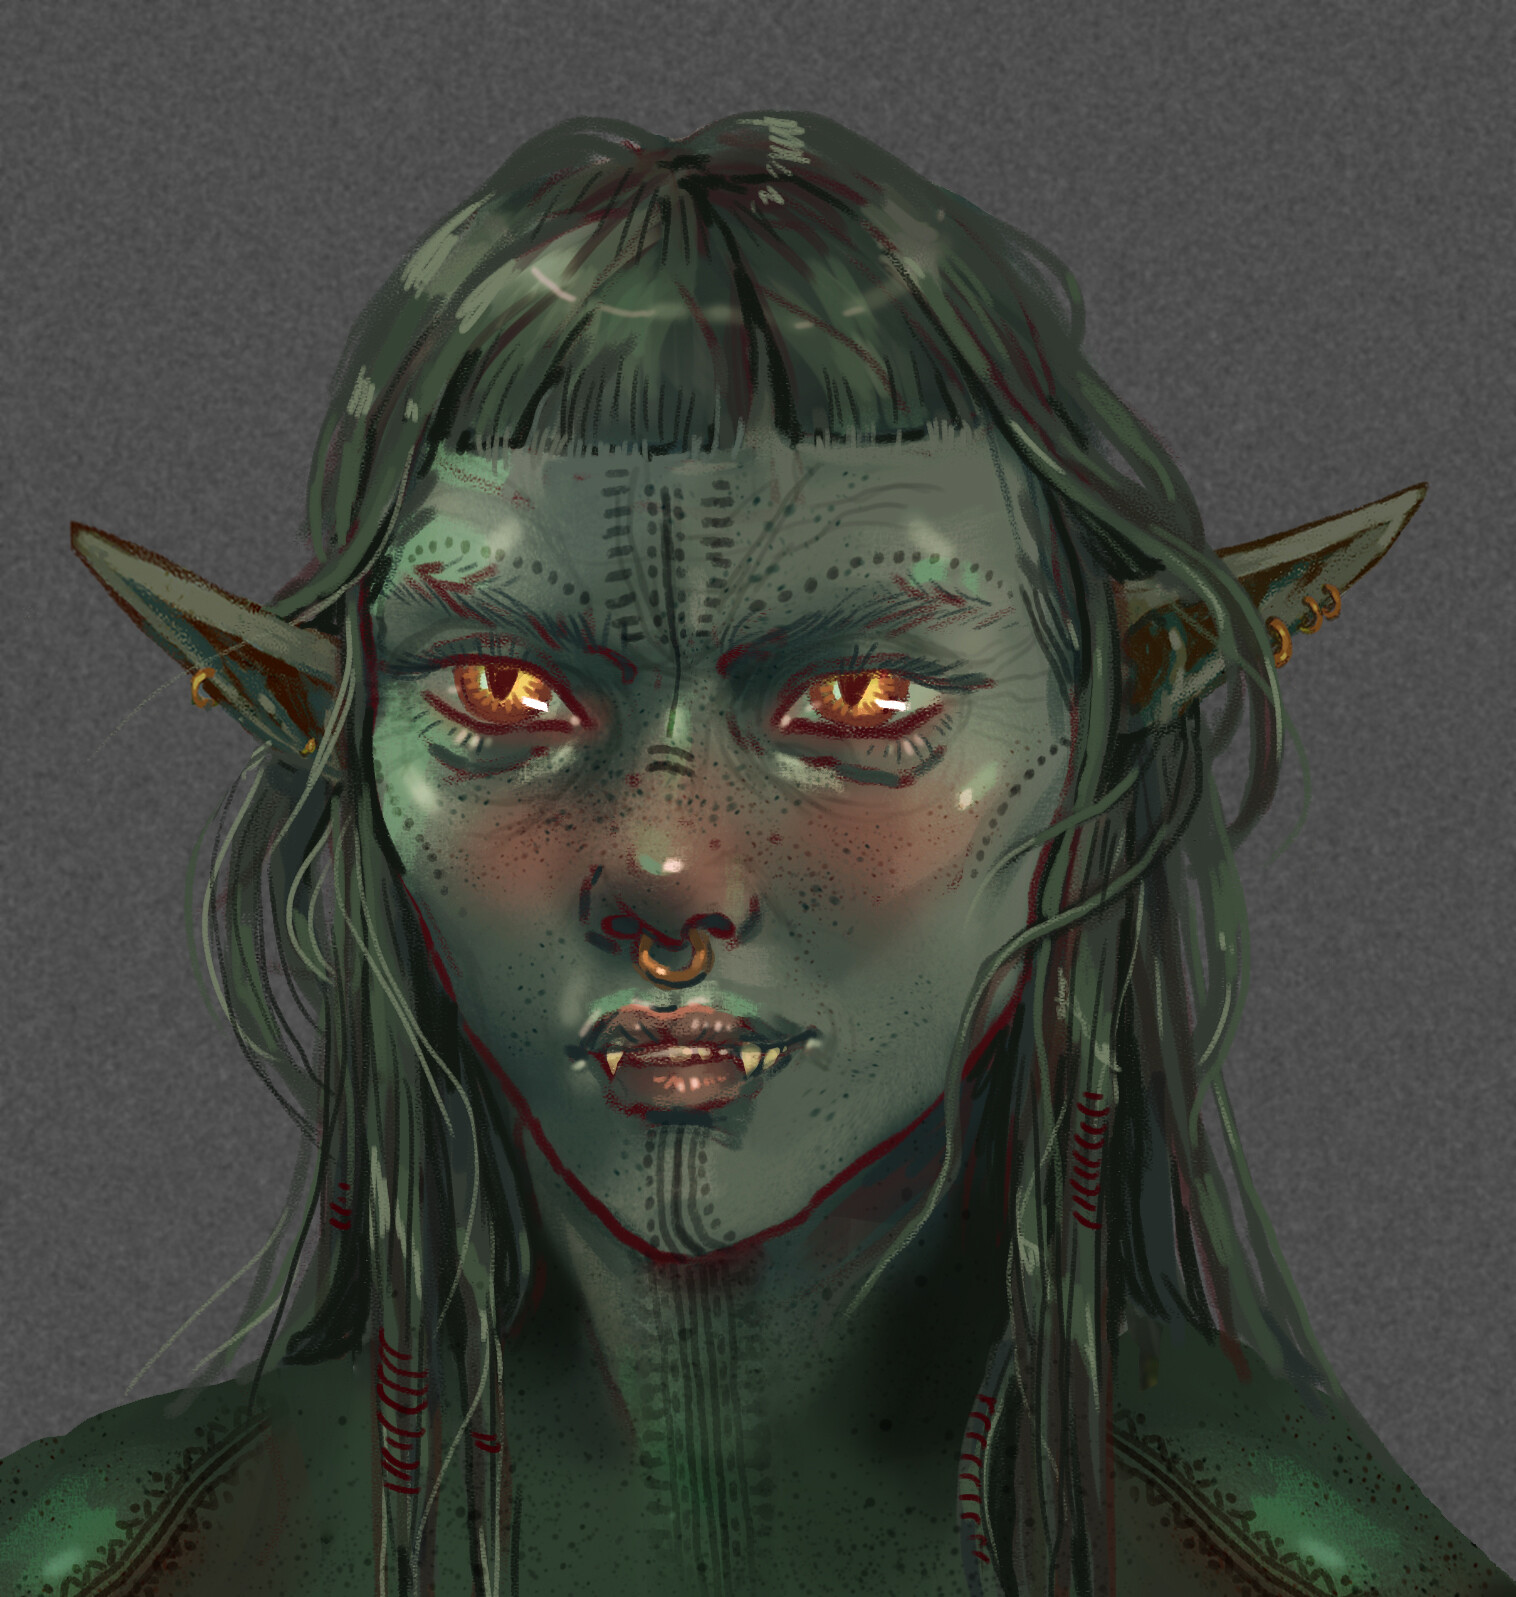 edit- here is a bit older Kitt from my dnd game